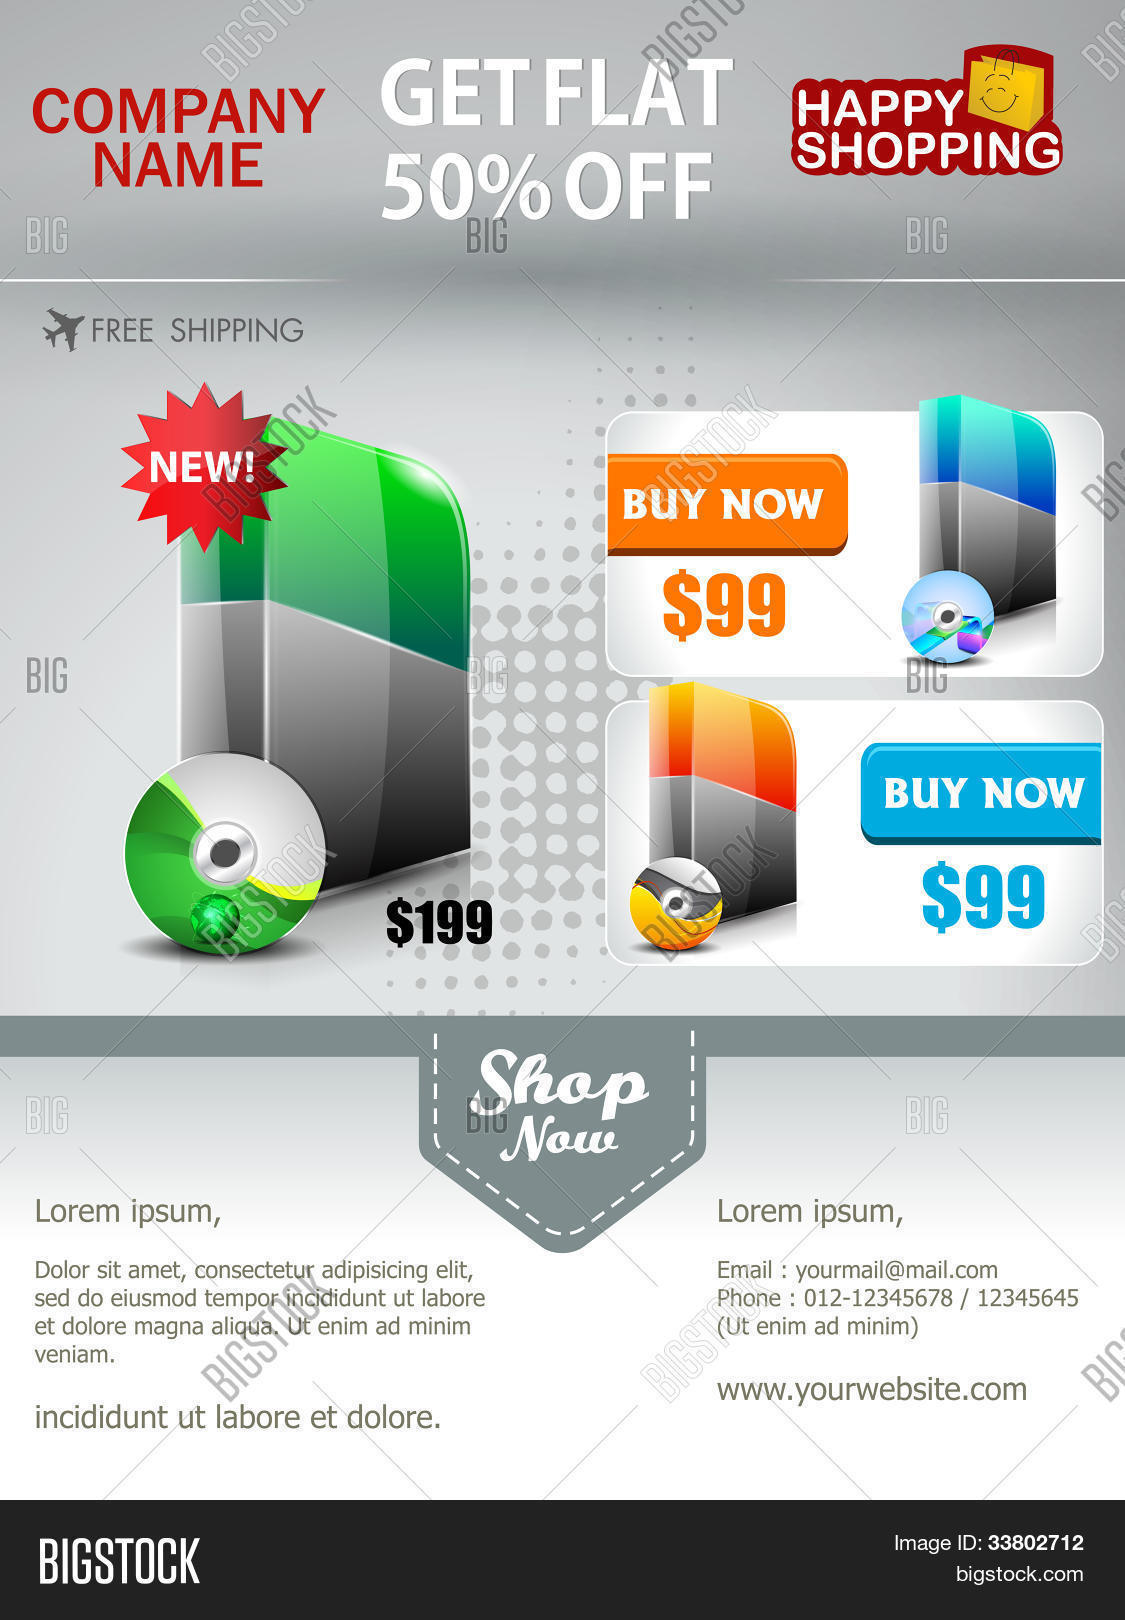 Professional Product Vector Photo Free Trial Bigstock - Promotional mailer template